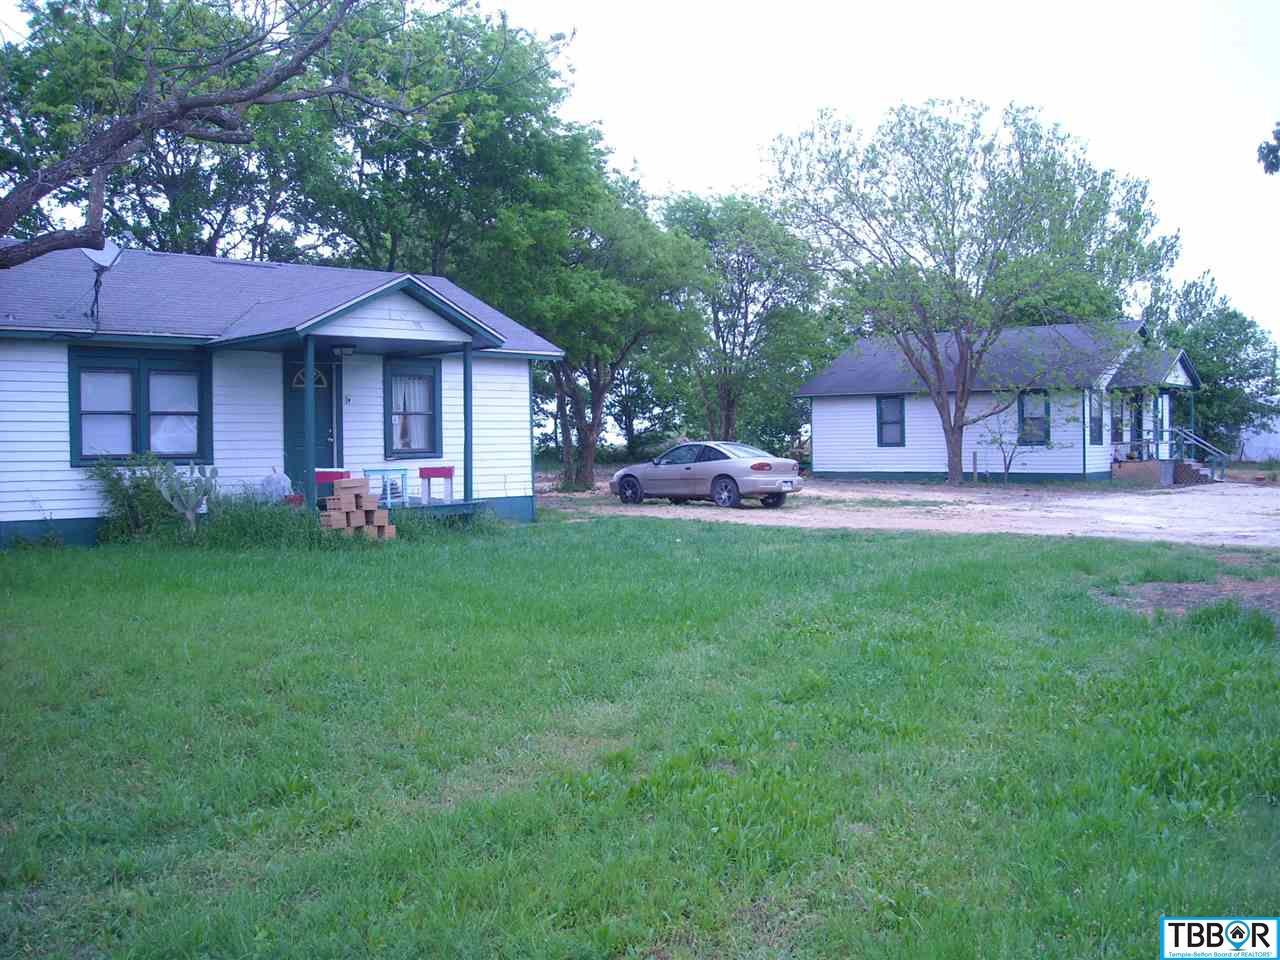 5830 State Hwy 53, Temple TX 76501 - Photo 1